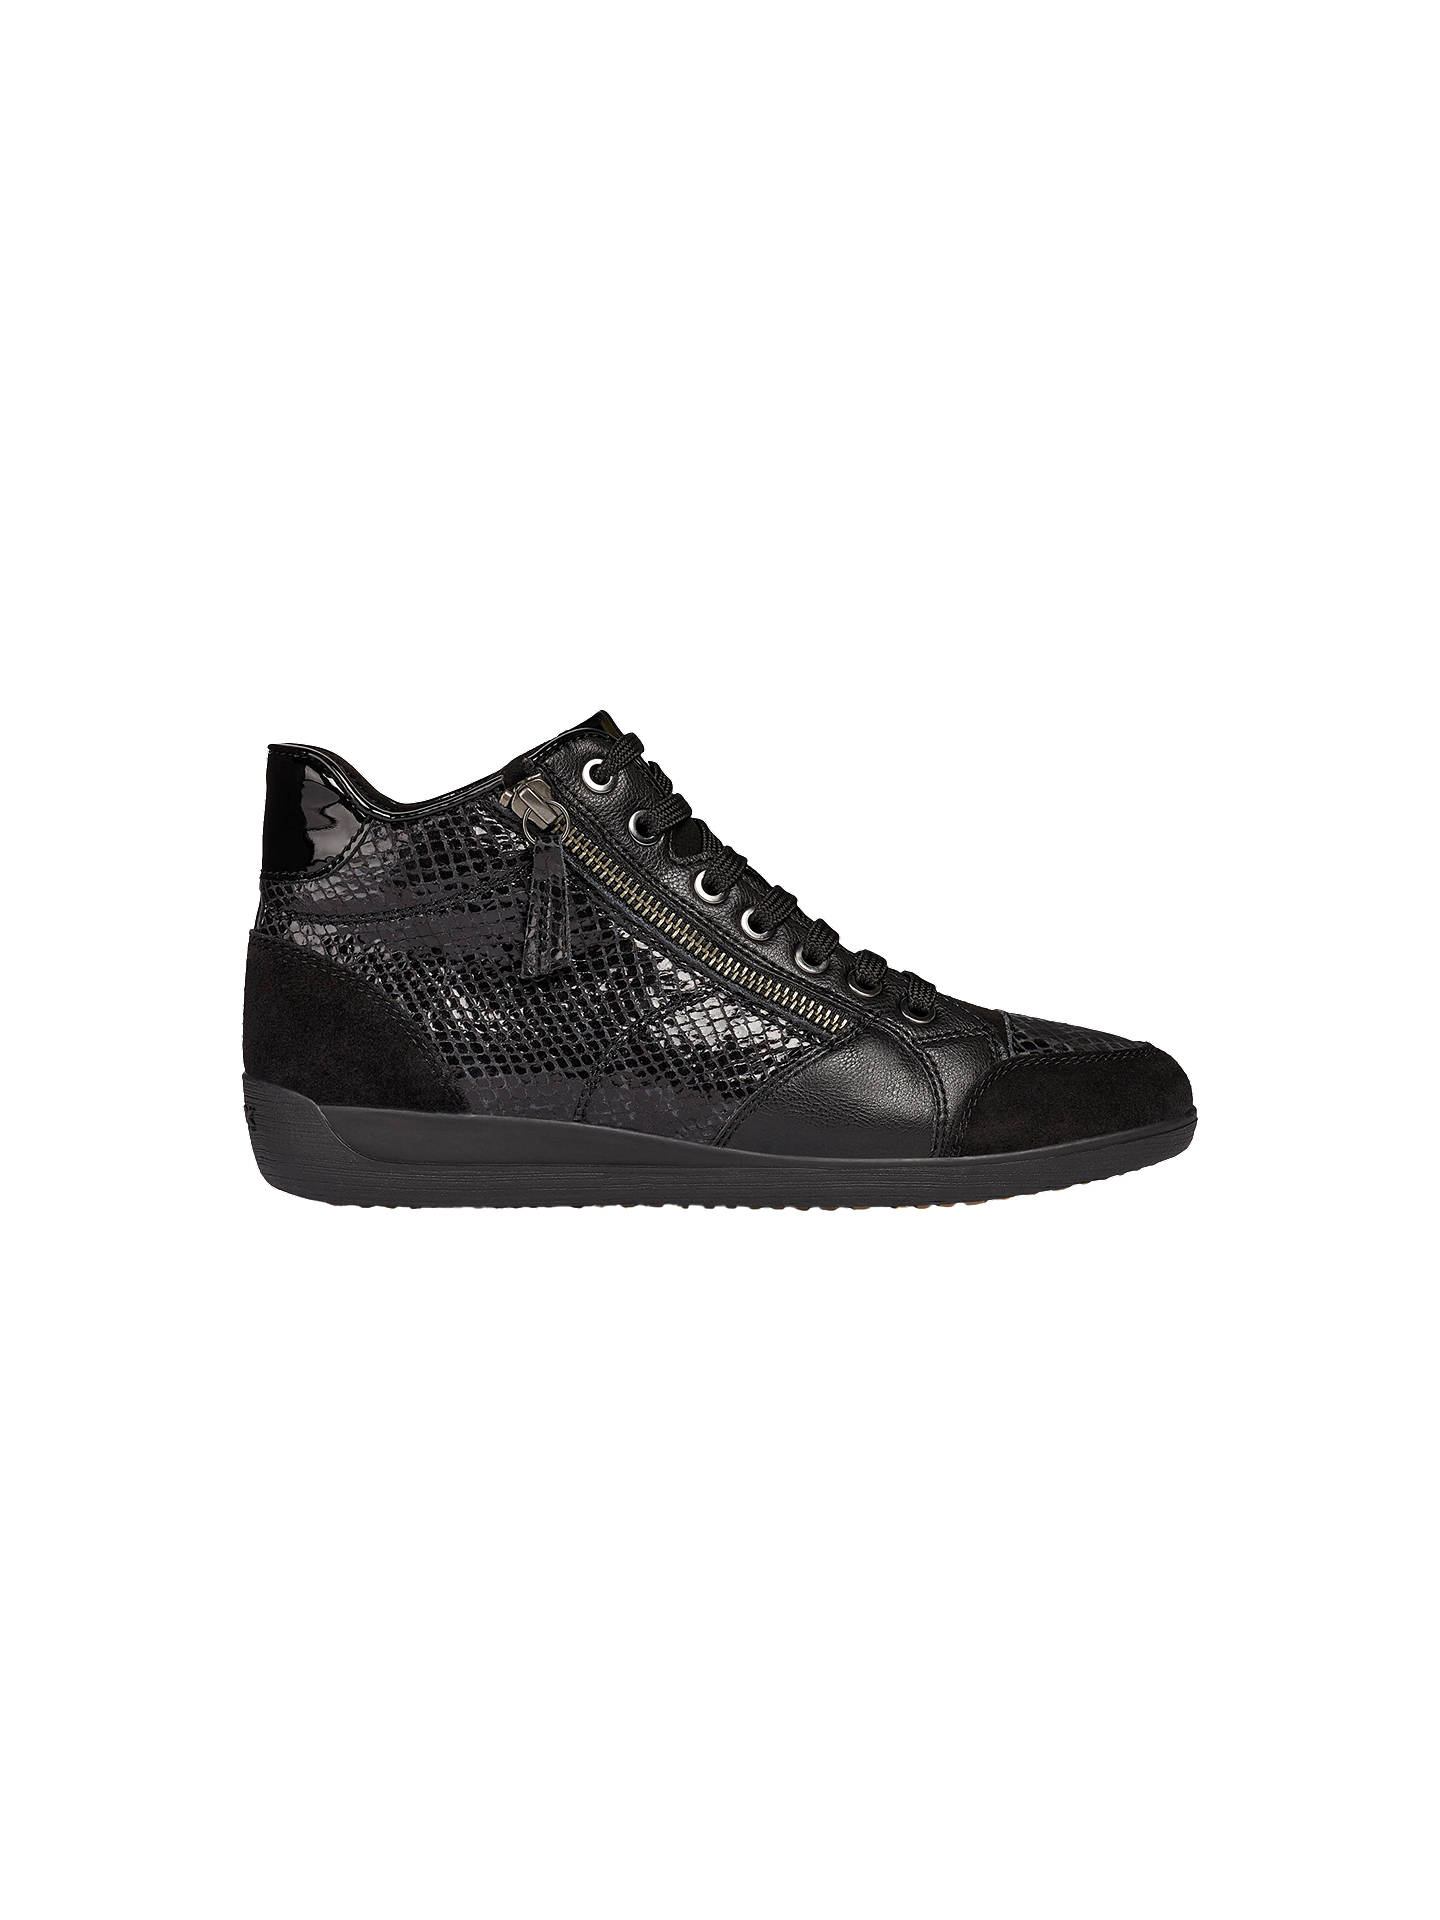 090467d2bd7 Buy Geox Women's Myria High Top Lace Up Trainers, Black Leather, 6 Online  at ...